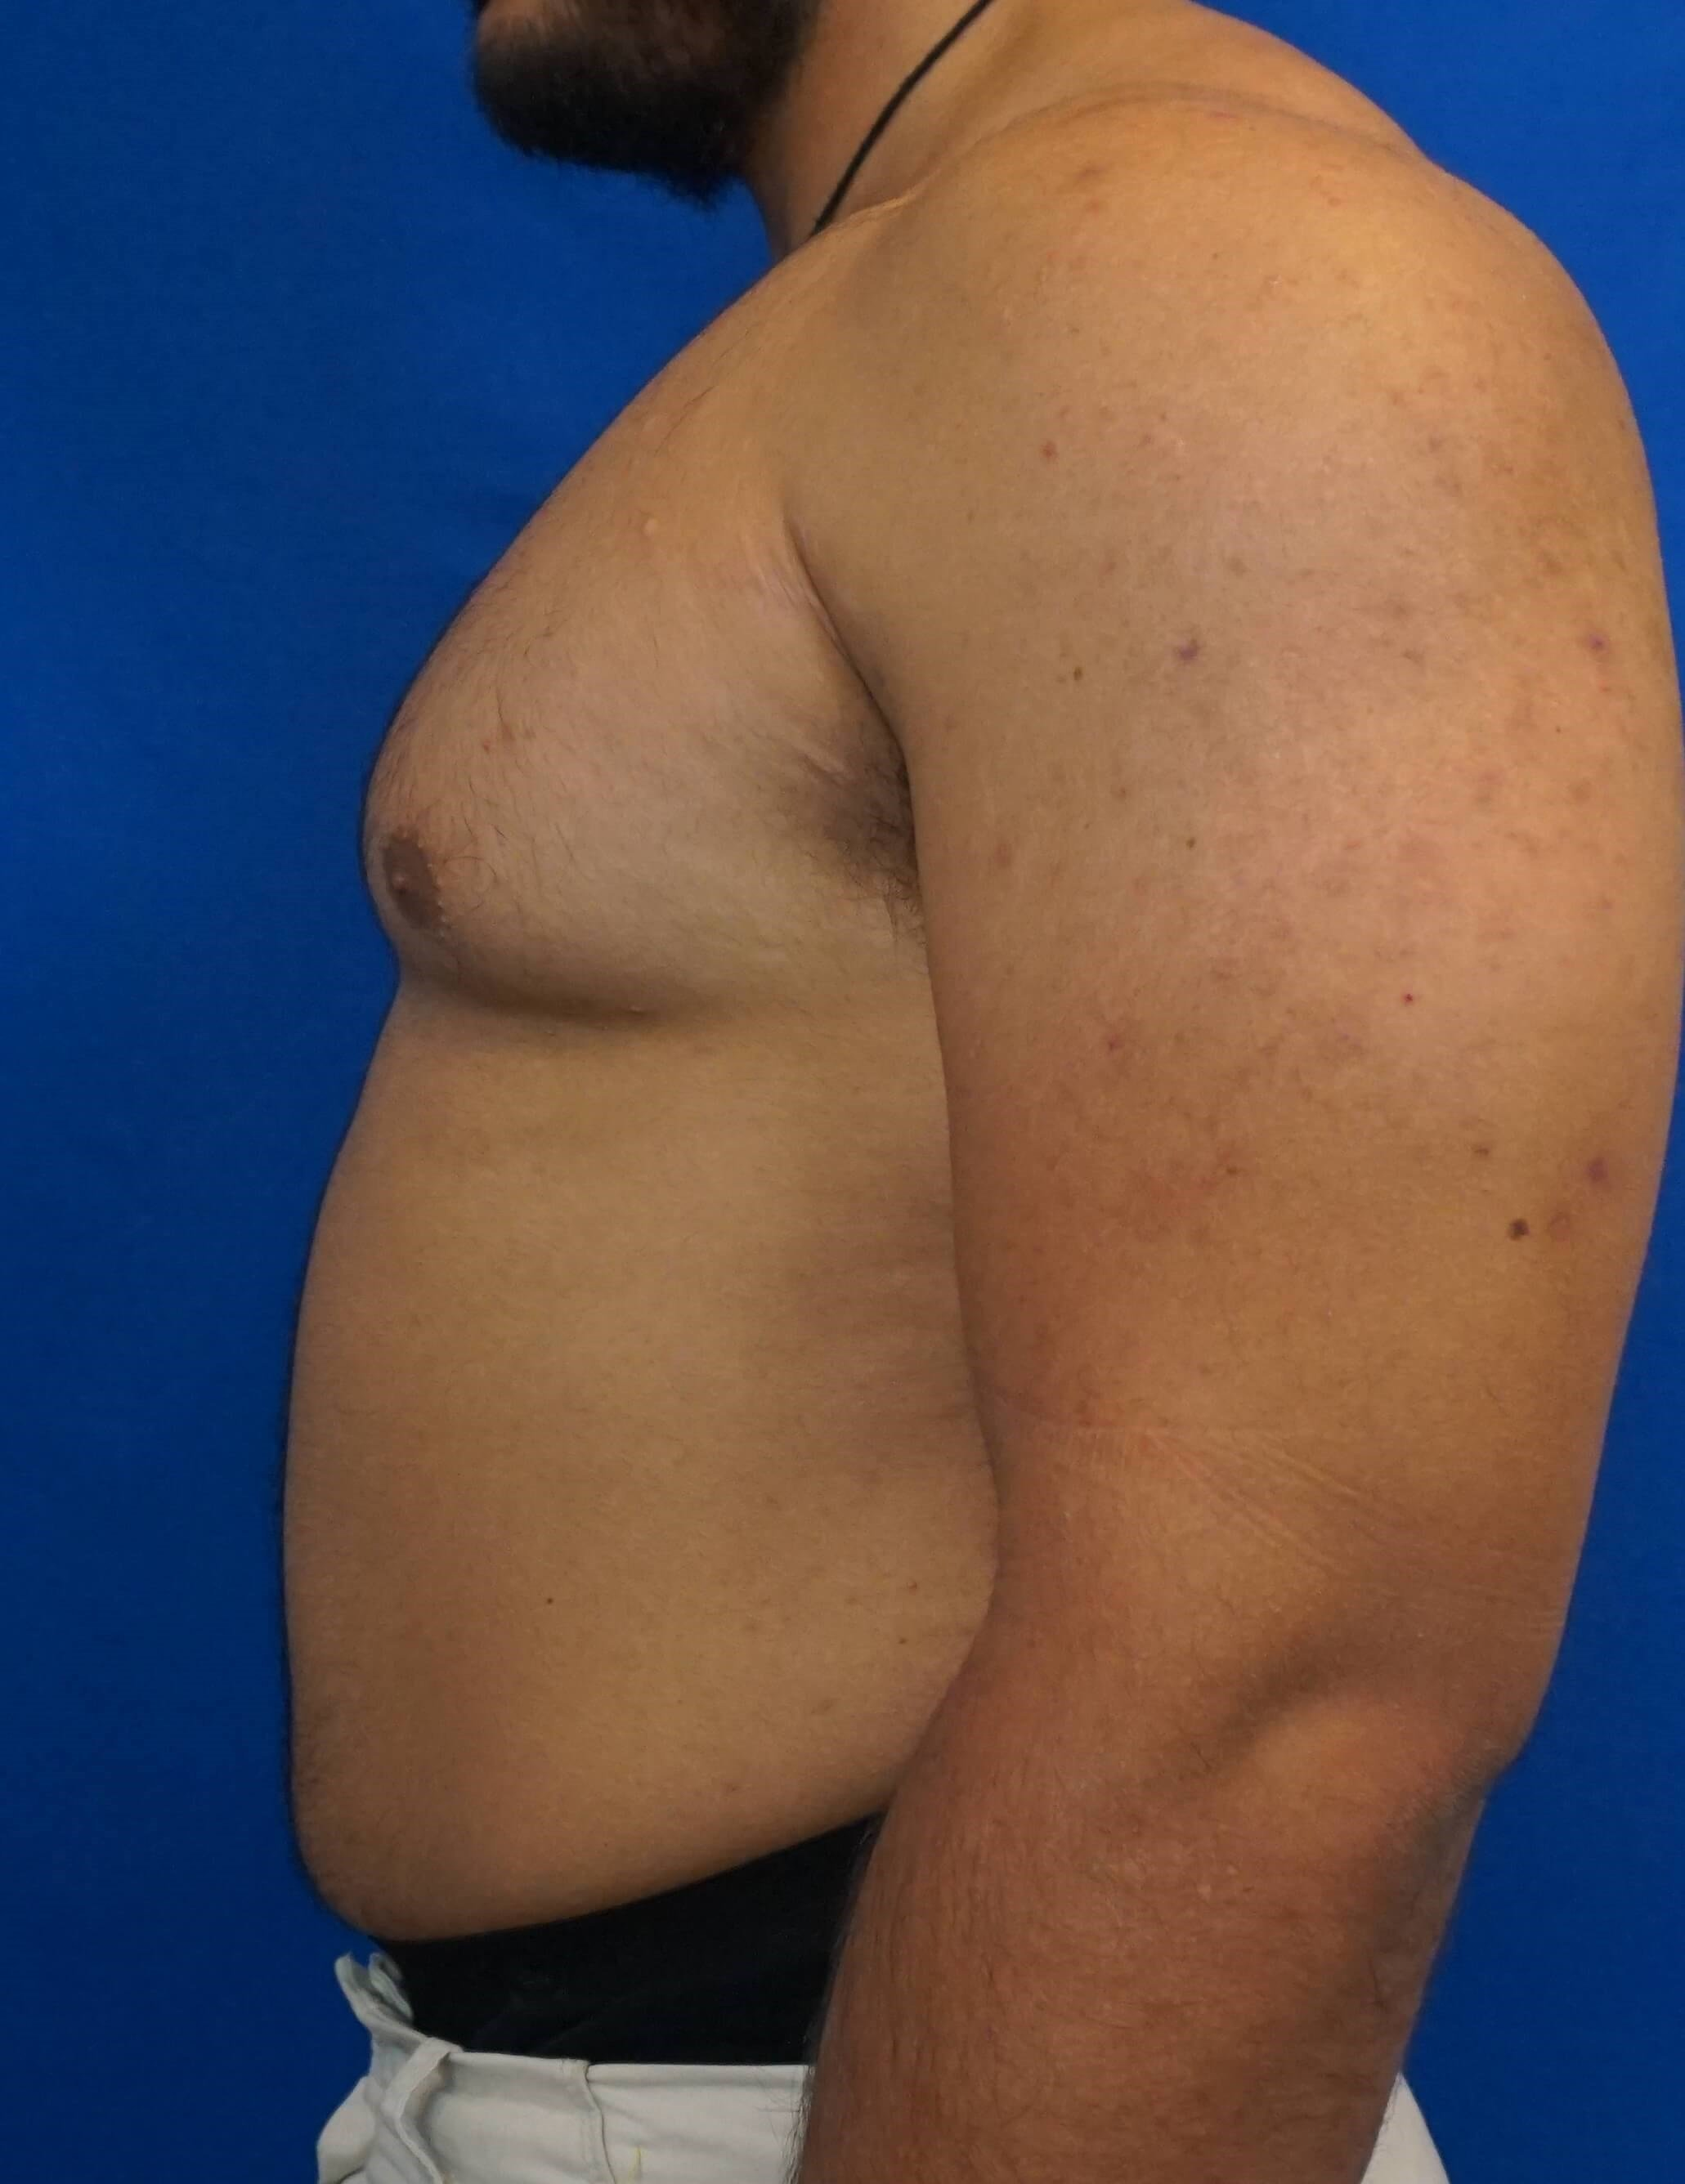 Male Breast Surgery Before